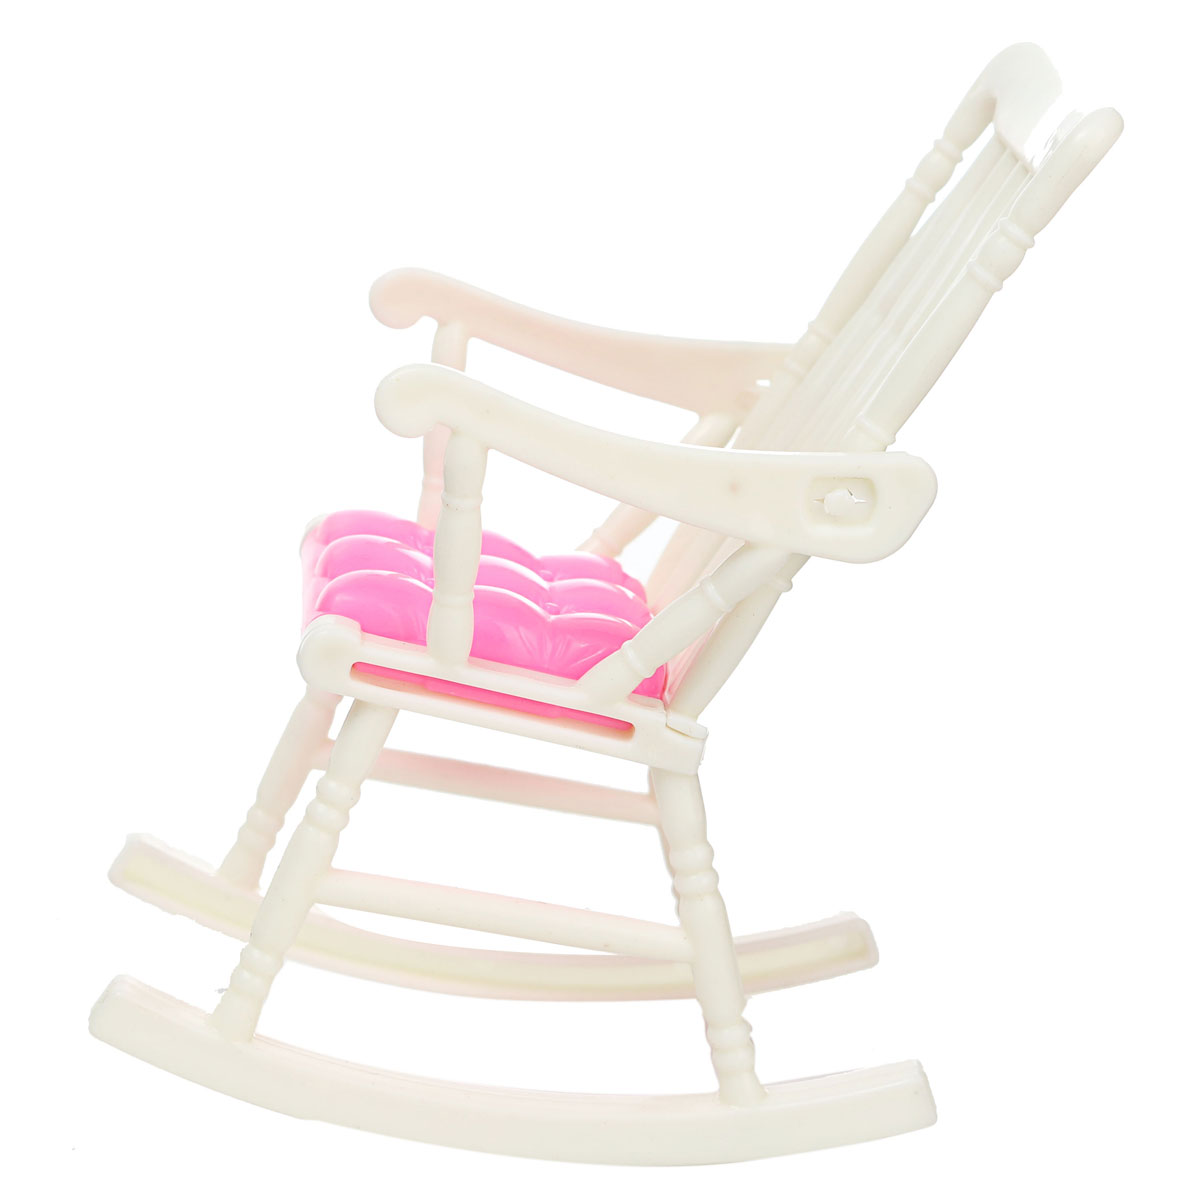 Popular Dolls Rocking ChairBuy Cheap Dolls Rocking Chair